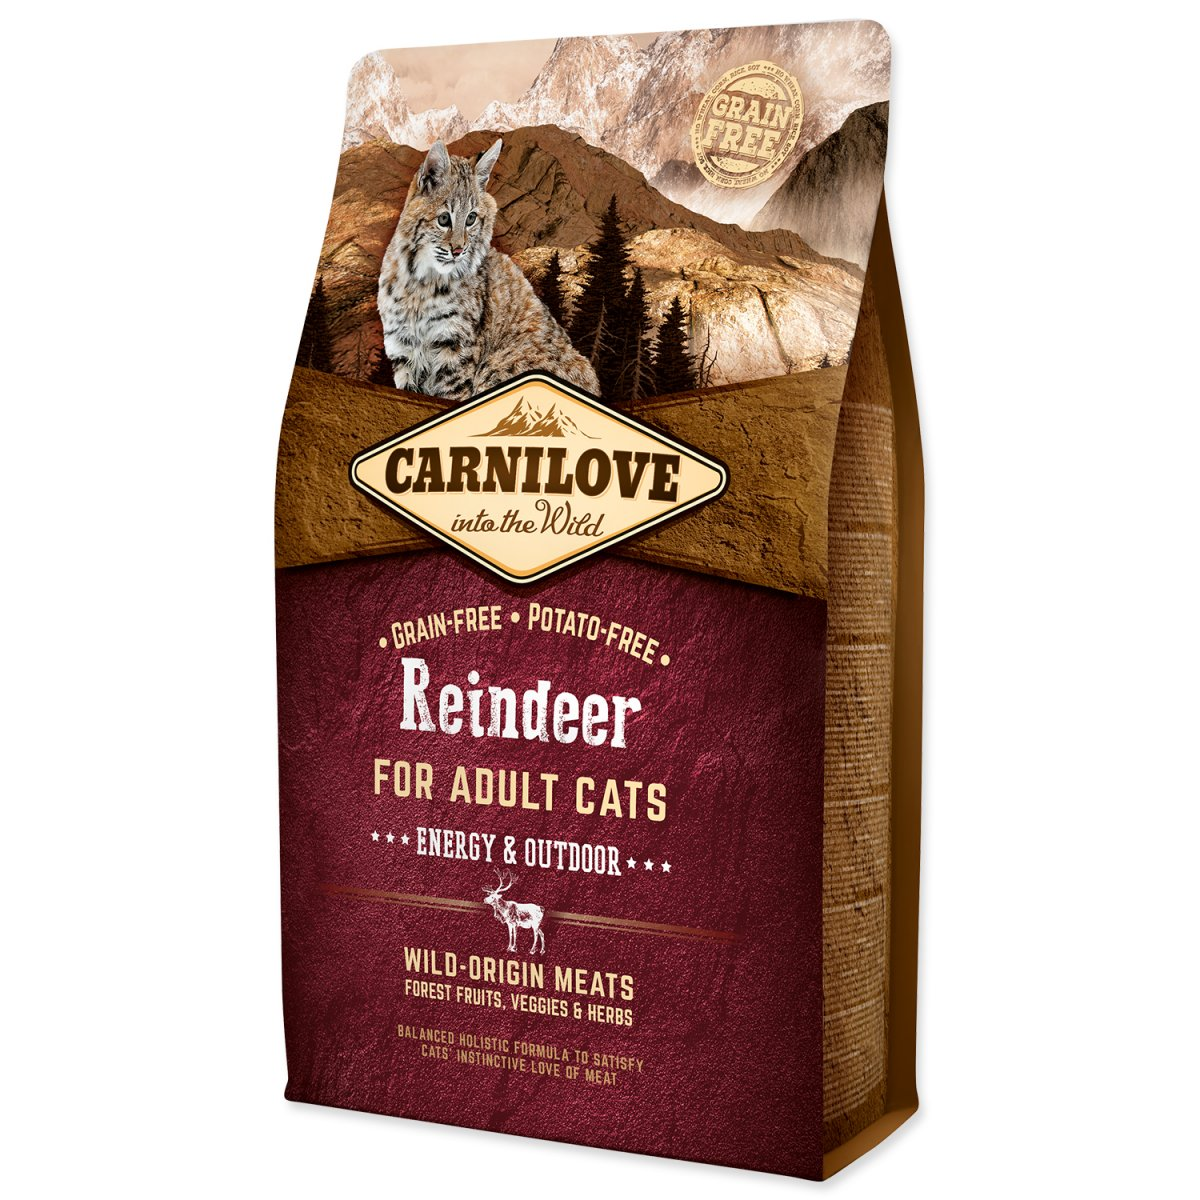 CARNILOVE Reindeer Adult Cats Energy and Outdoor (2kg)